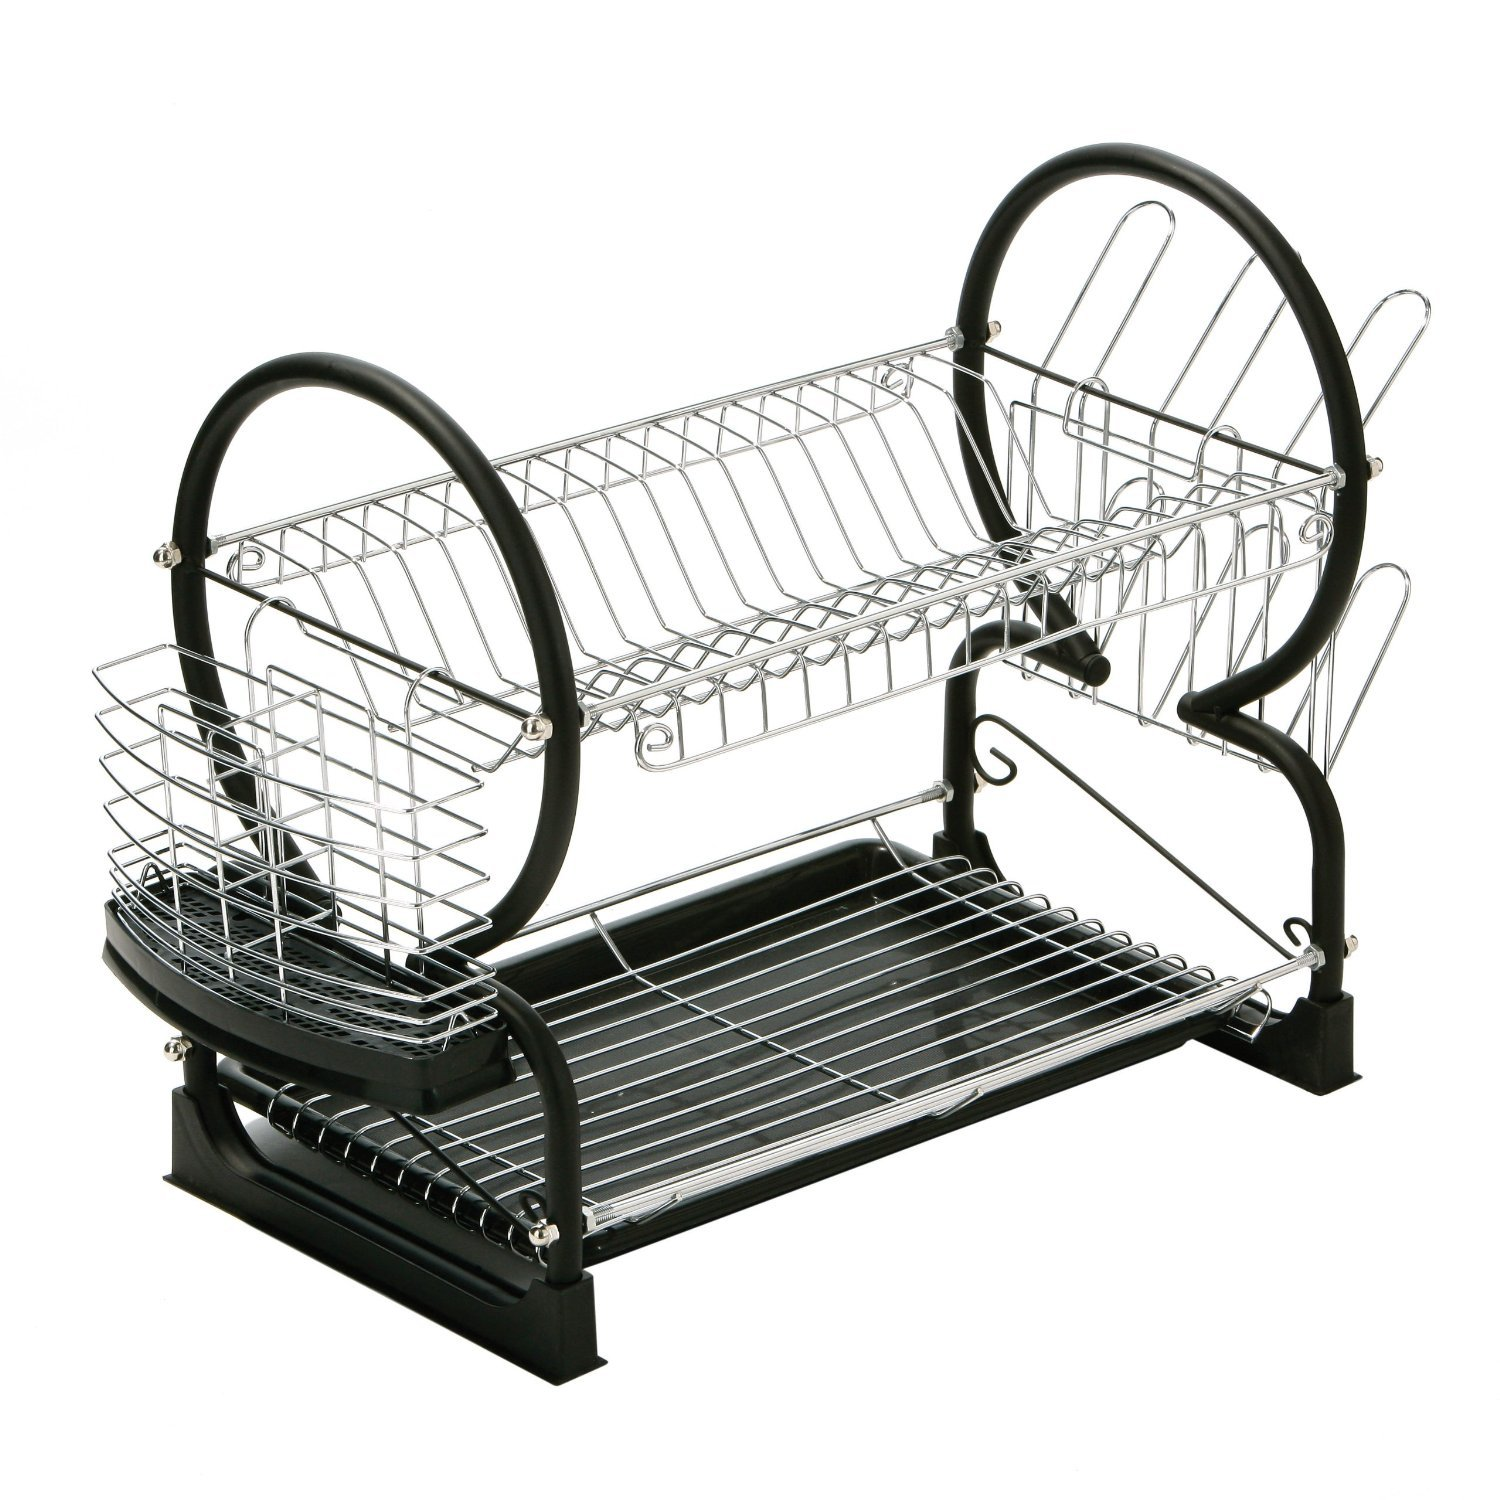 2 Tier Dish Drainer Purple Chrome With Removable Drip Tray: Amazon.co.uk:  Kitchen U0026 Home